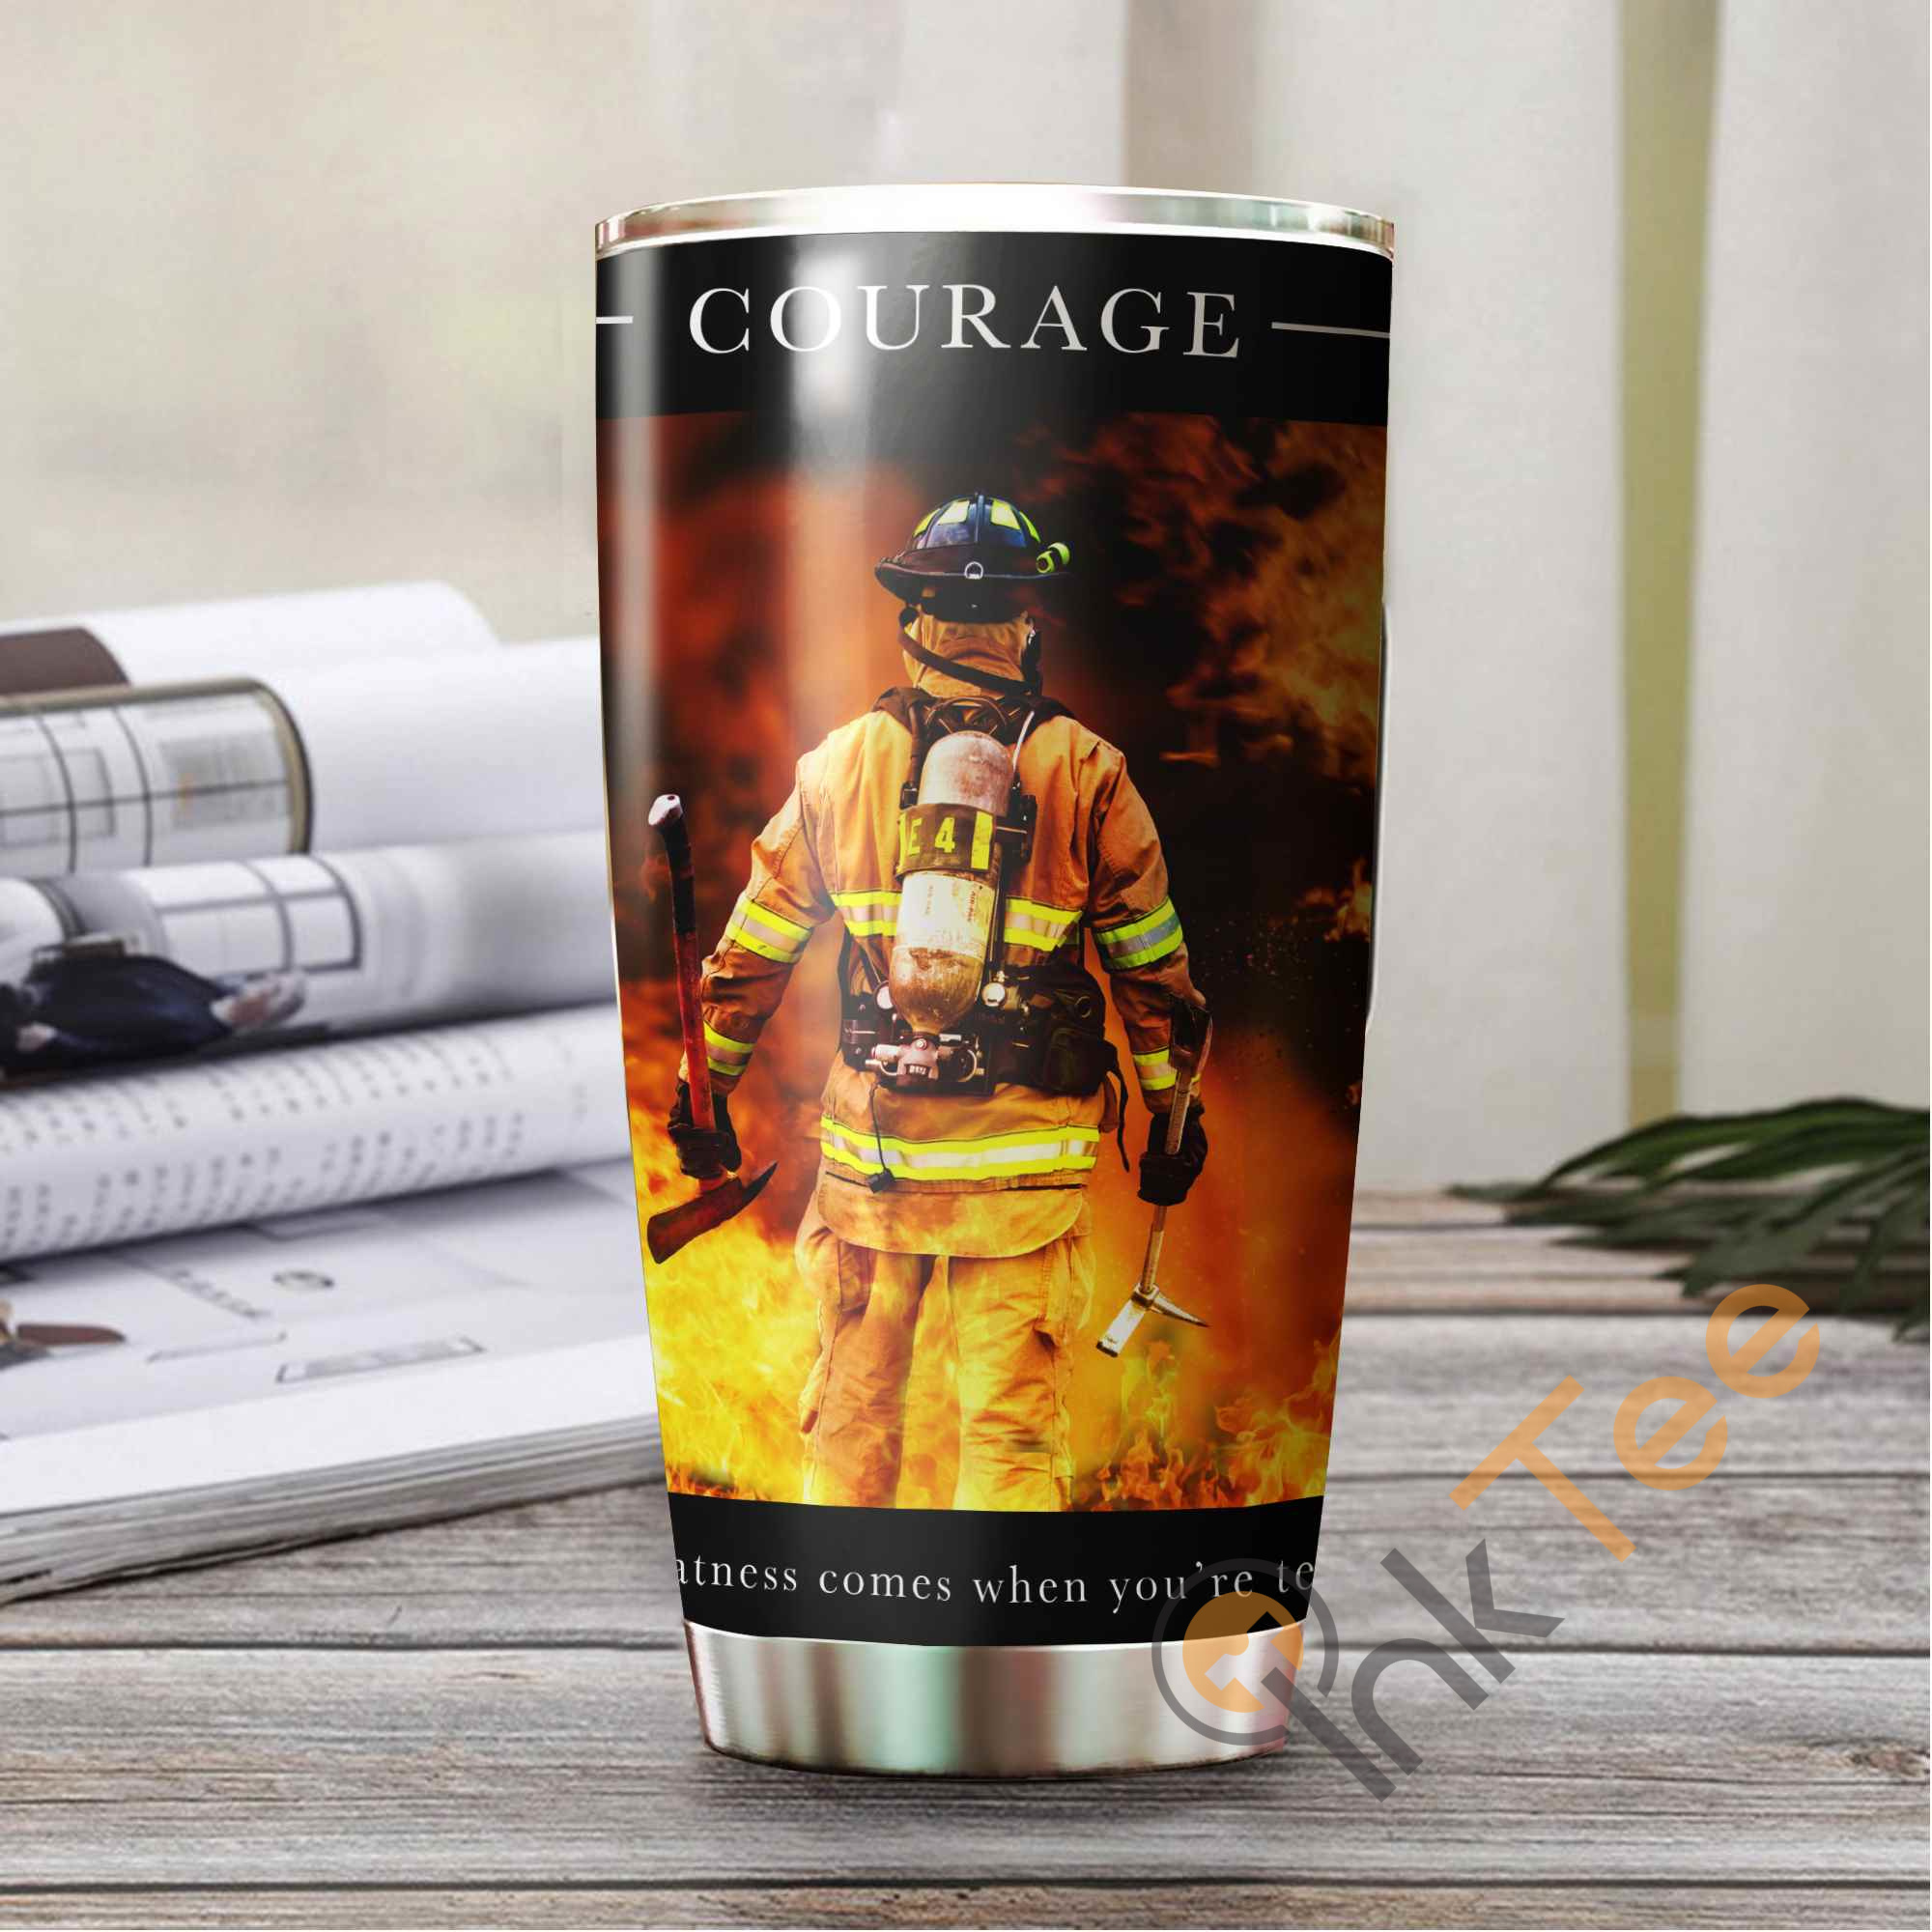 Firefighter's Courage Stainless Steel Tumbler